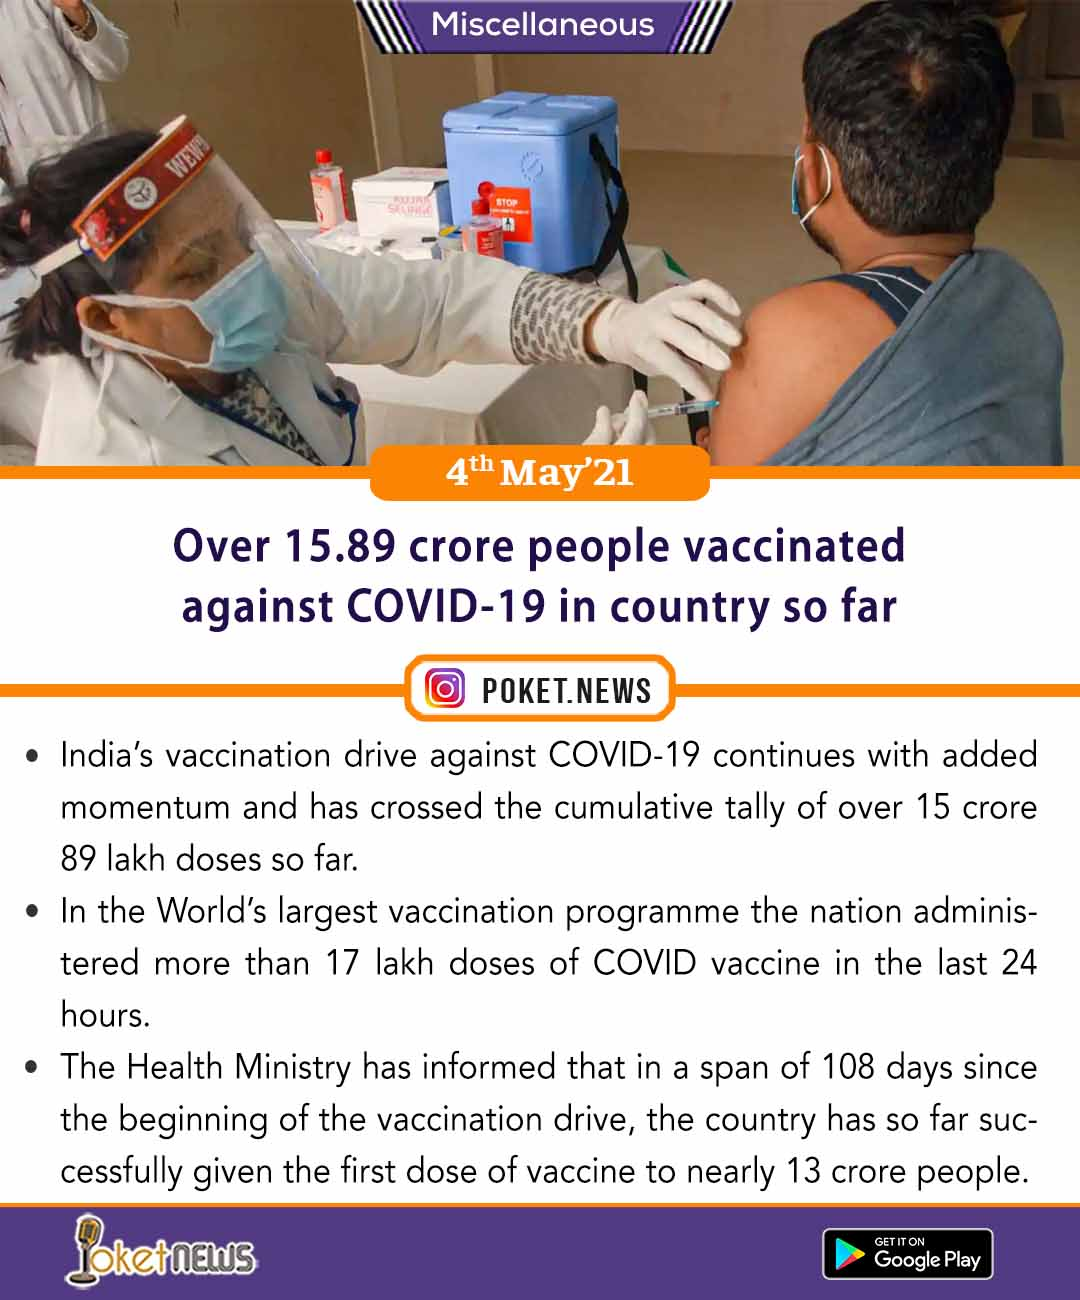 Over 15.89 crore people vaccinated against COVID-19 in country so far